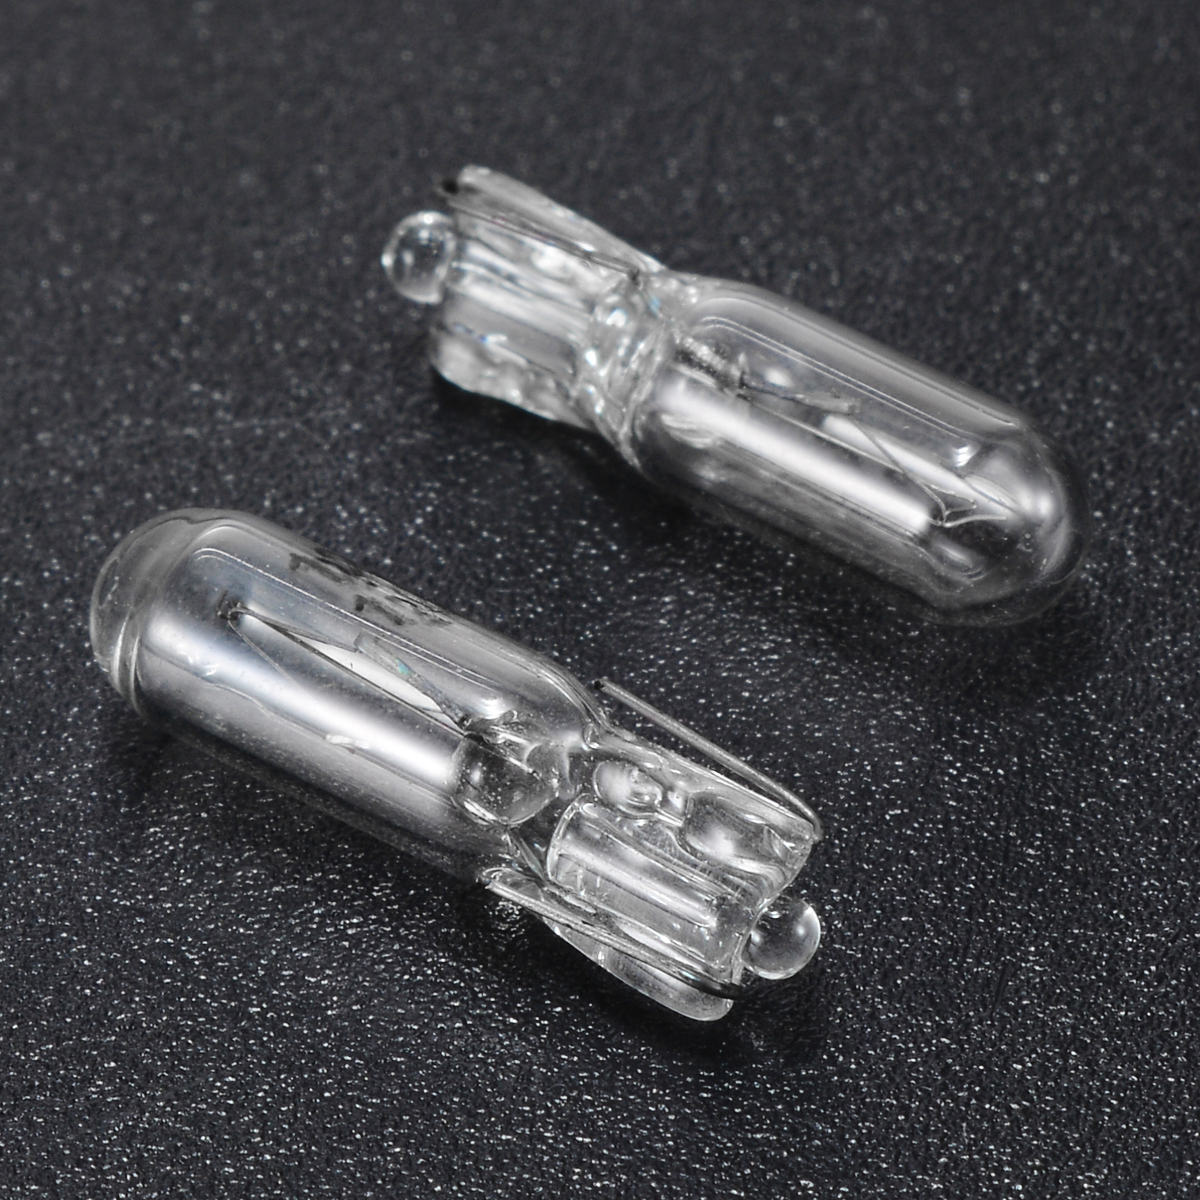 New Arrival 10pcs 12V 1.2W T5 286 Glass Amber Light Blub Car Wedge Dashboard Instrument Panel Brake Light Bulbs